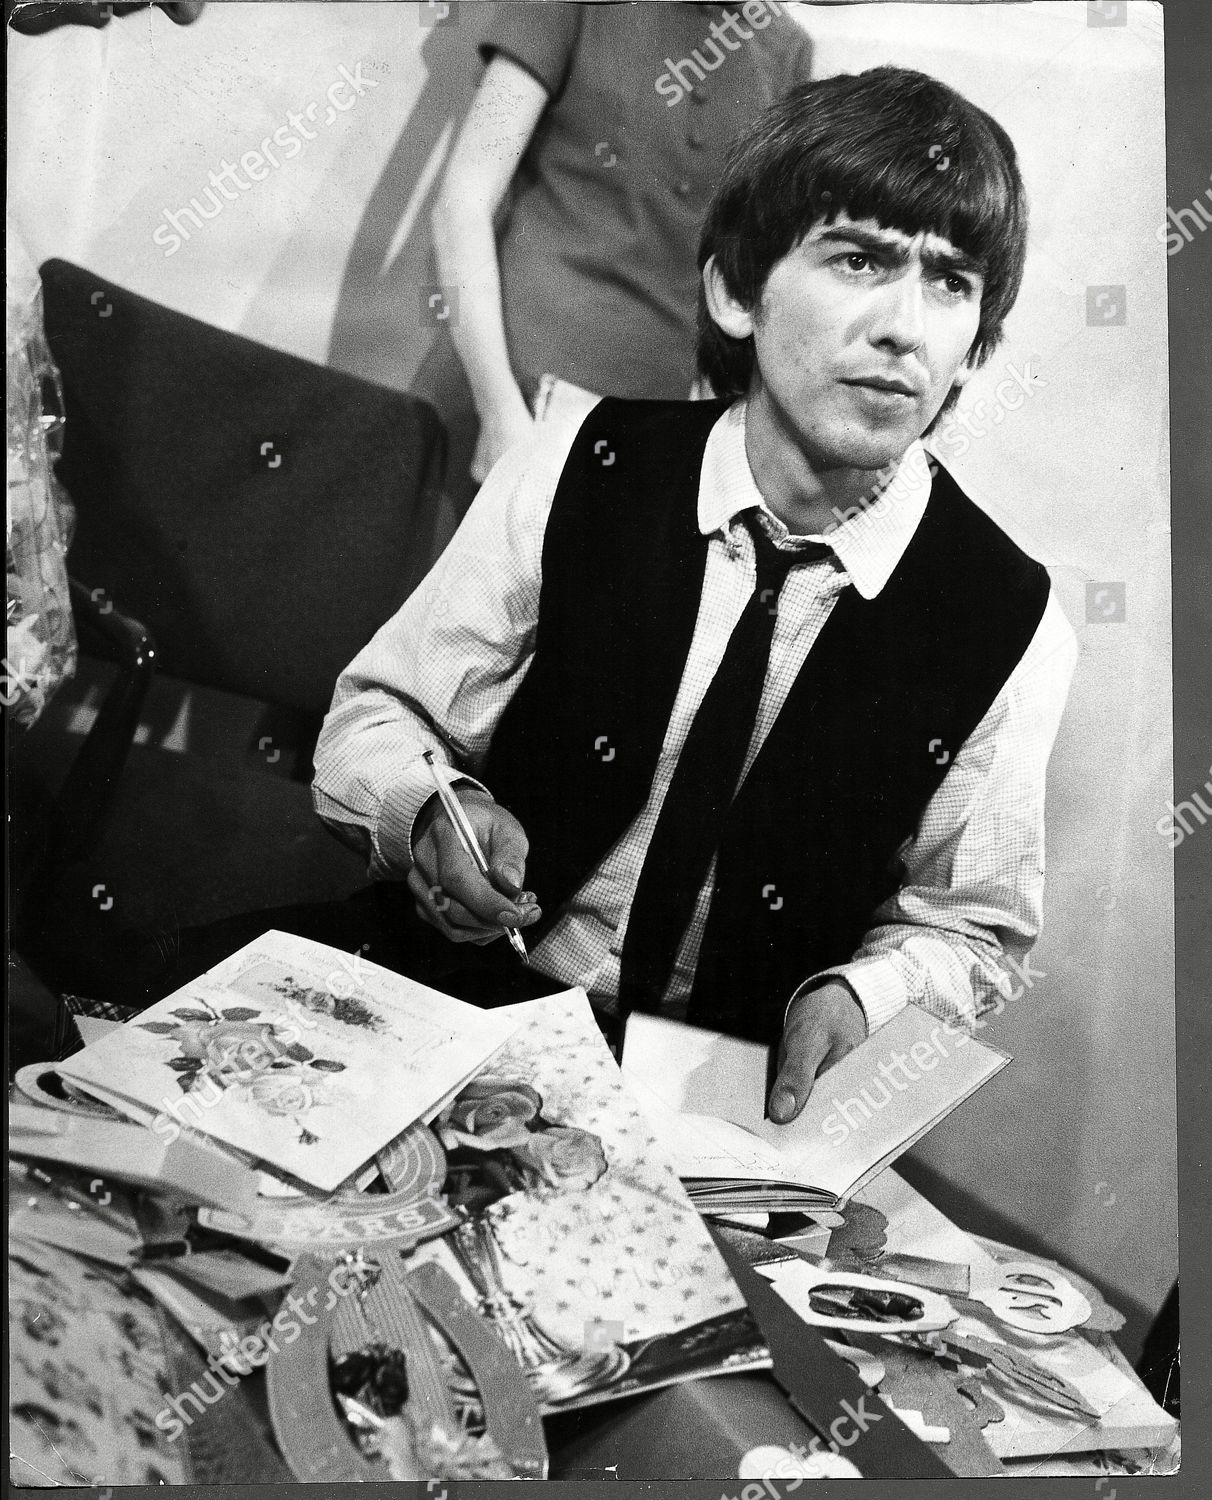 The Beatle Was Sent An Estimated 15 000 Cards And Gifts. Stock Image by Frank Apthorp for editorial use, Feb 25, 1964